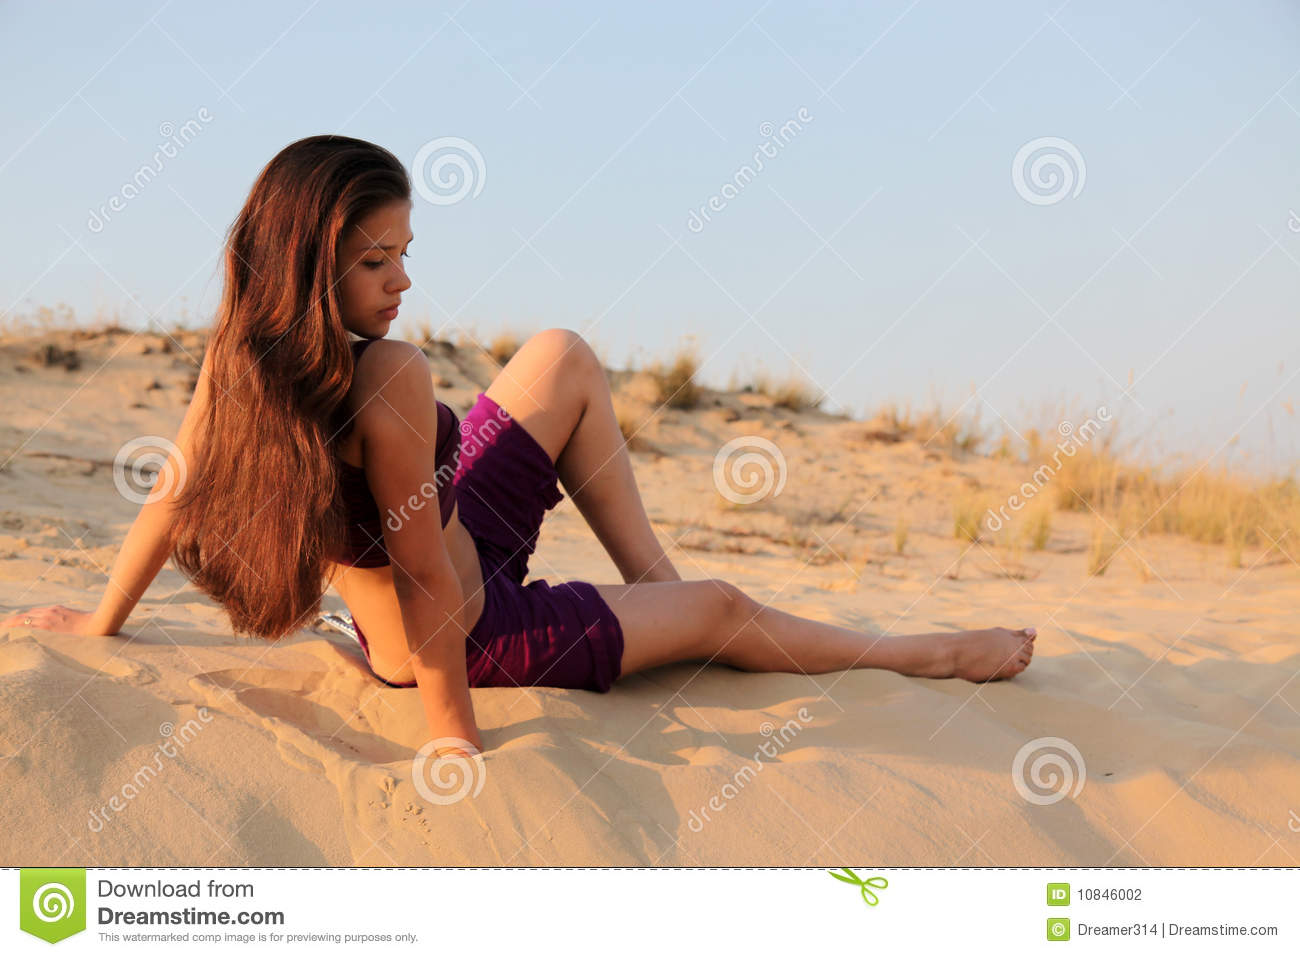 Young charming girl in desert